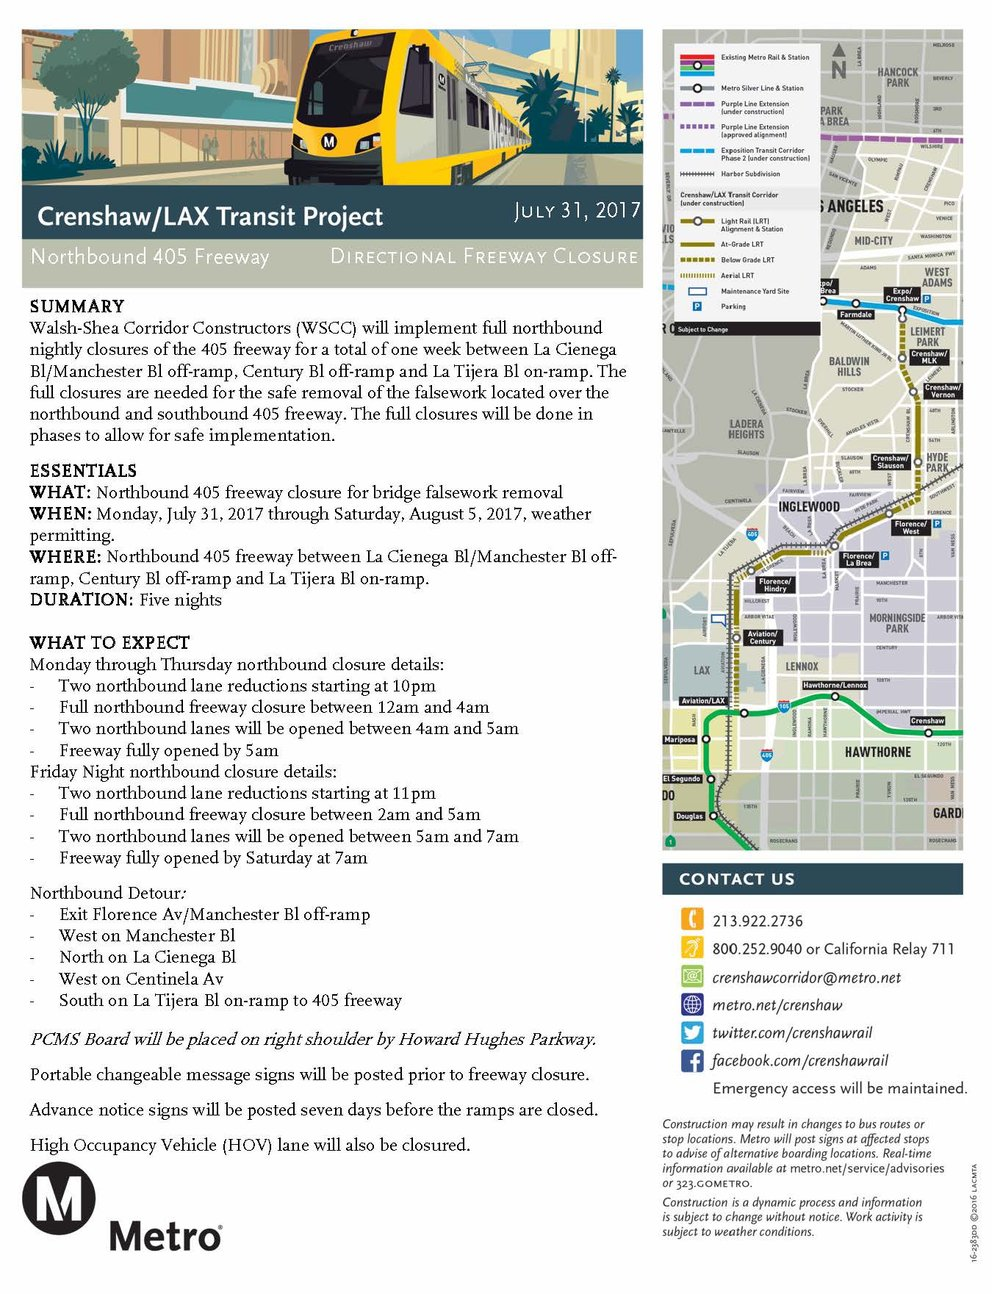 405 closure and lane restrictions